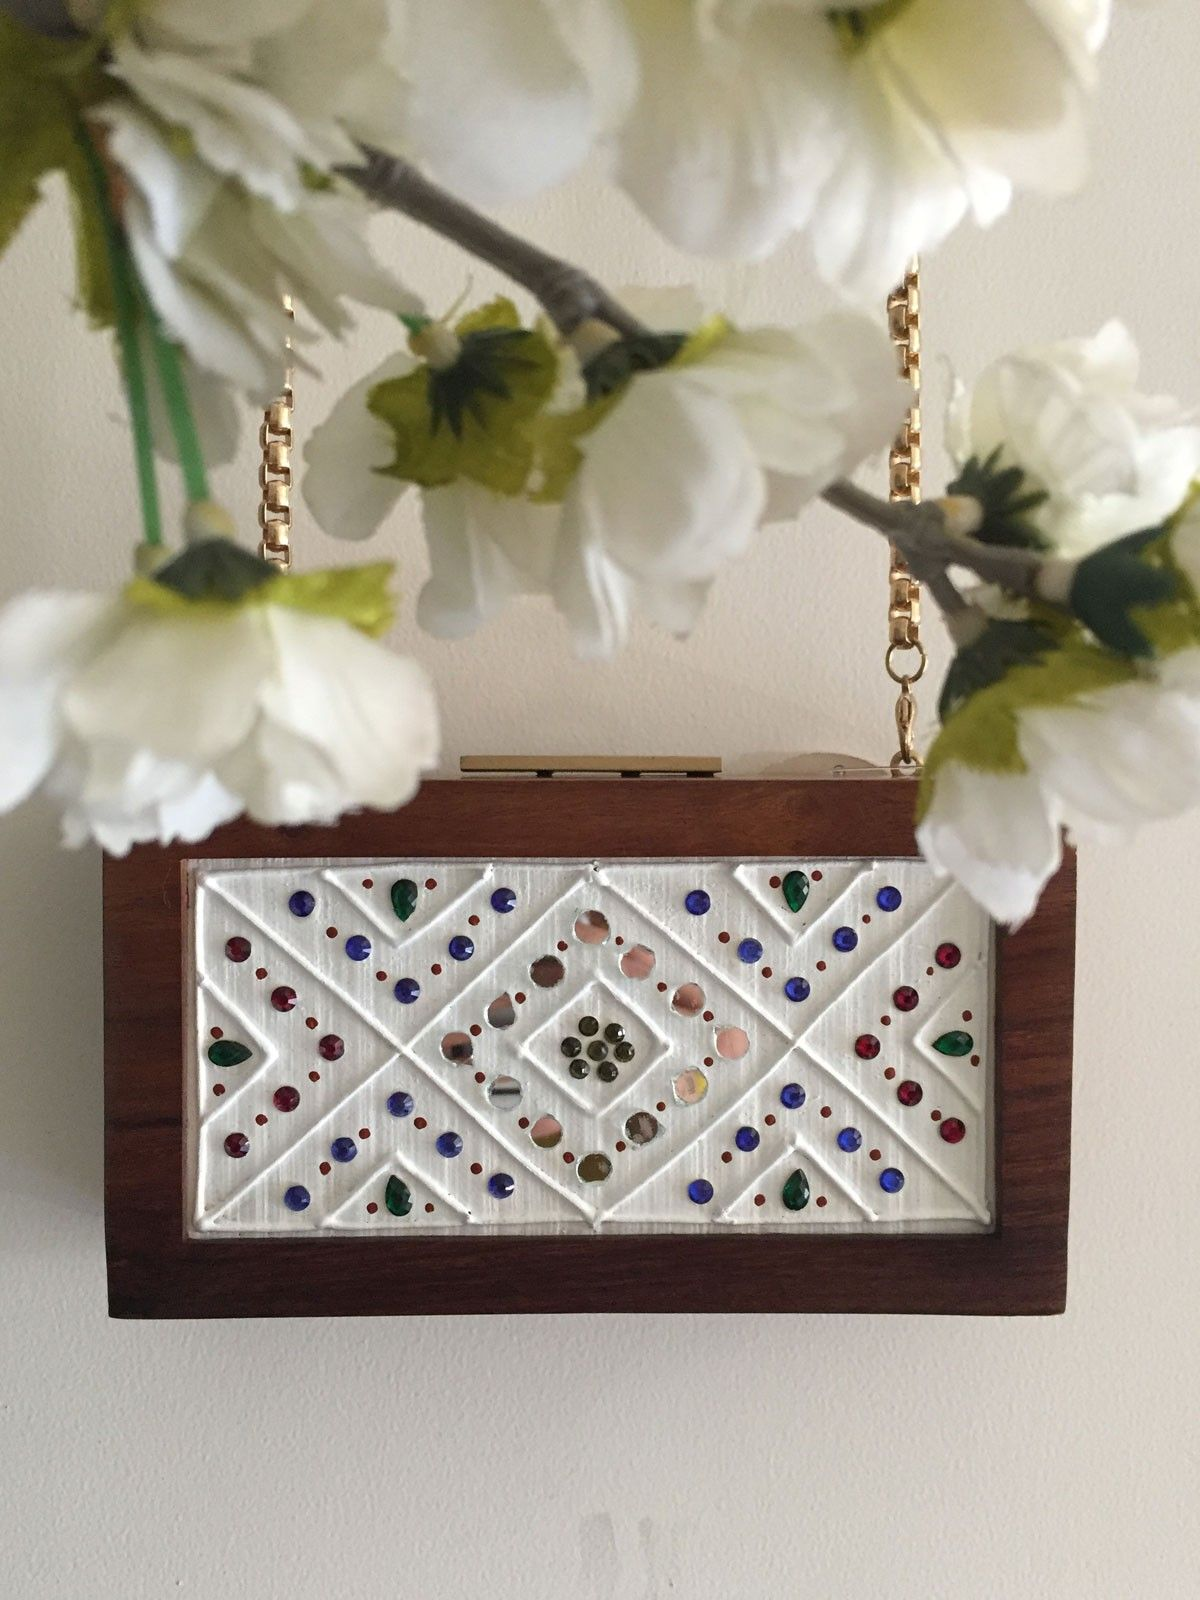 Leppan white womesn's wodden frame clutch with multicolor stones and mirror